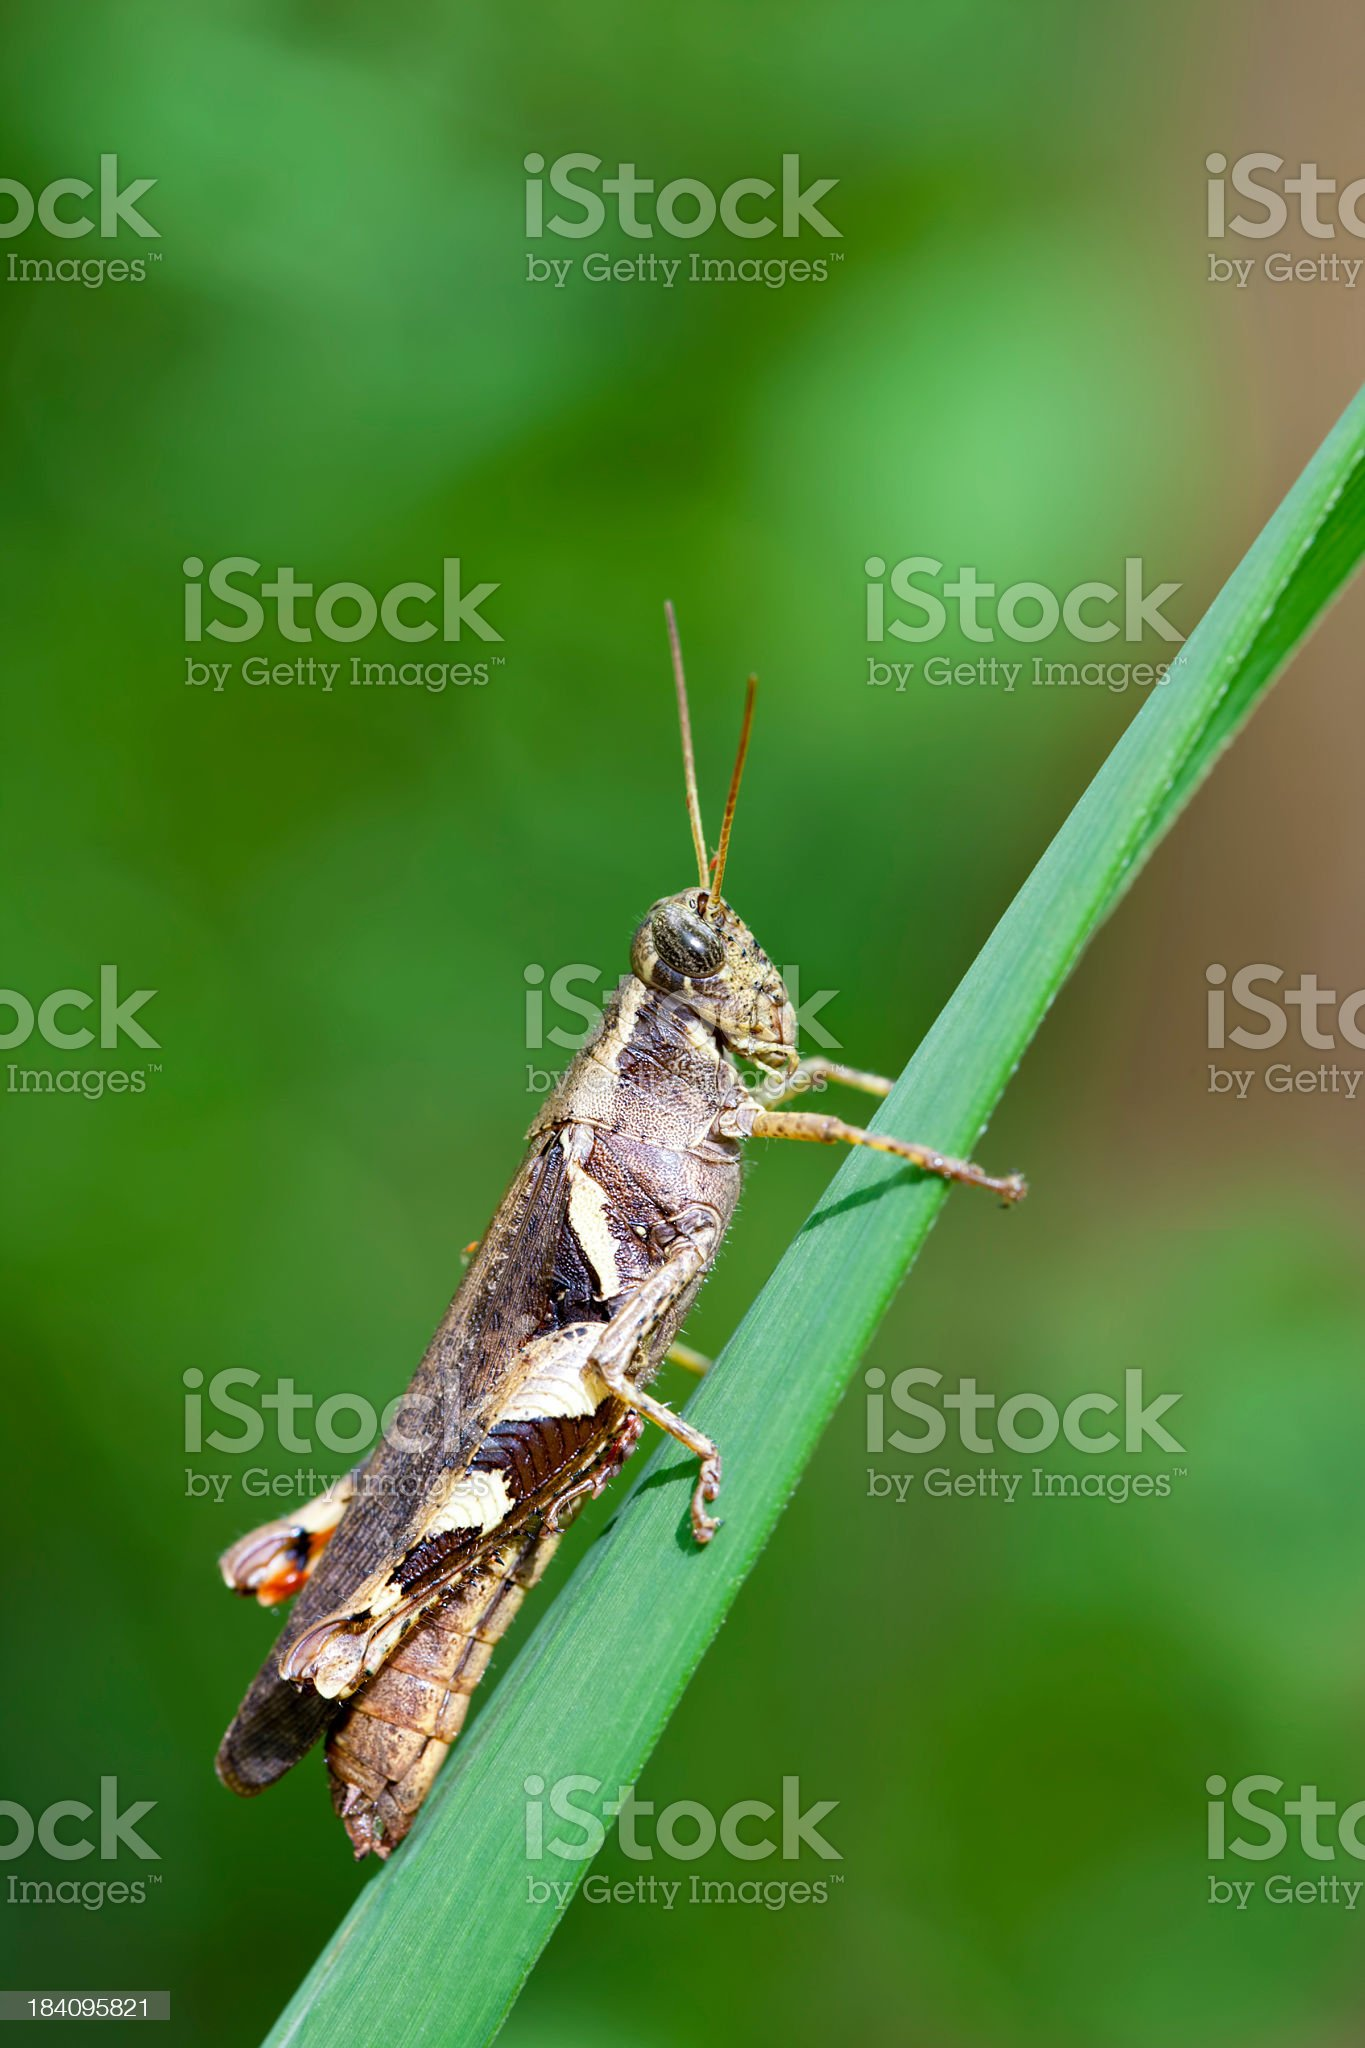 Brown locust on a blade of grass. royalty-free stock photo